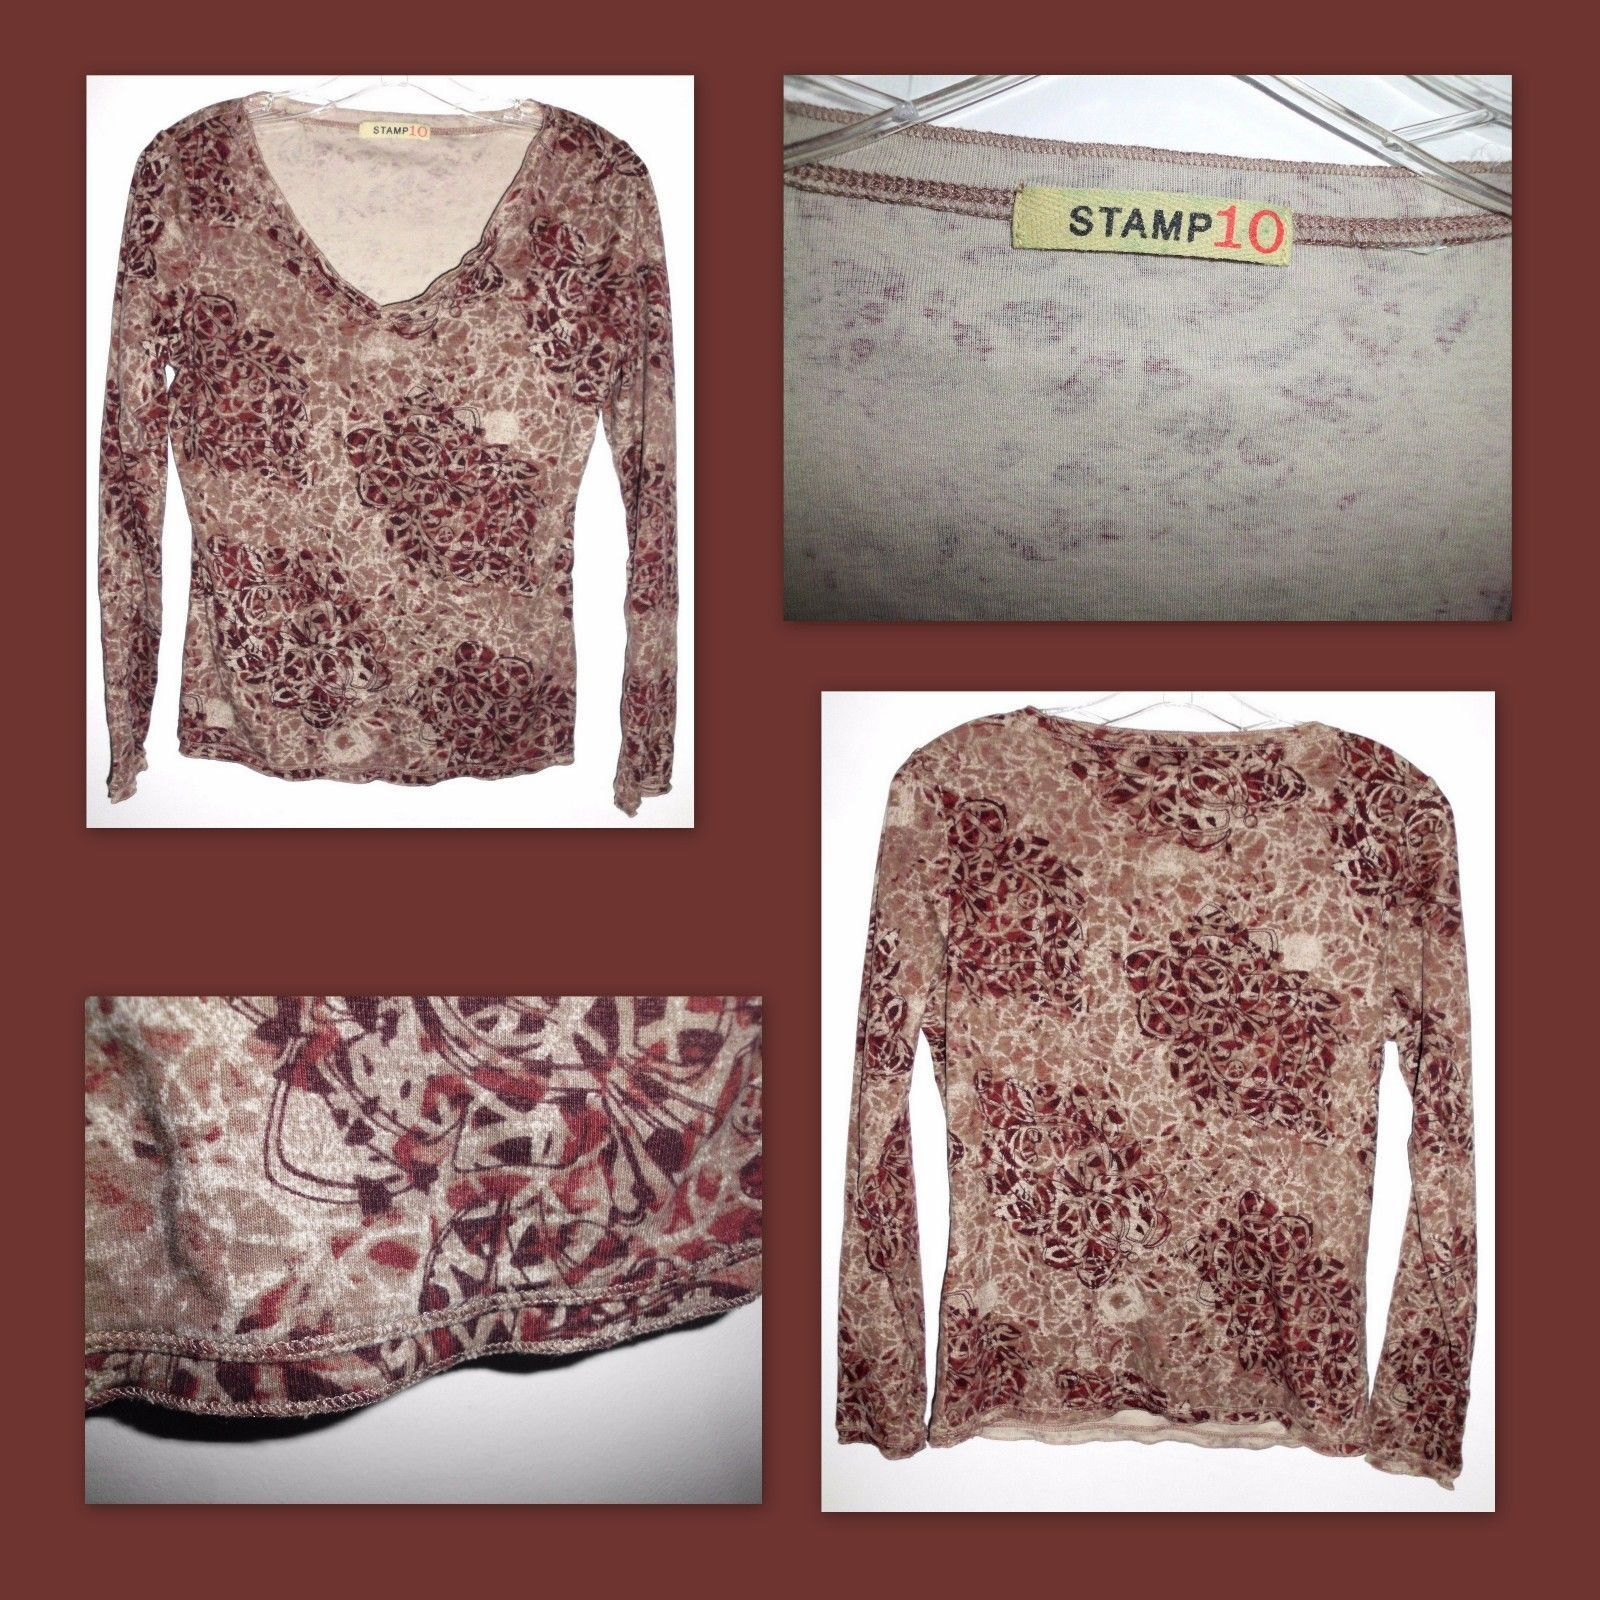 "Primary image for STAMP 10 Brown Maroon Long Sleeve V-Neck Shirt Top 36"" Bust Women's VGC"